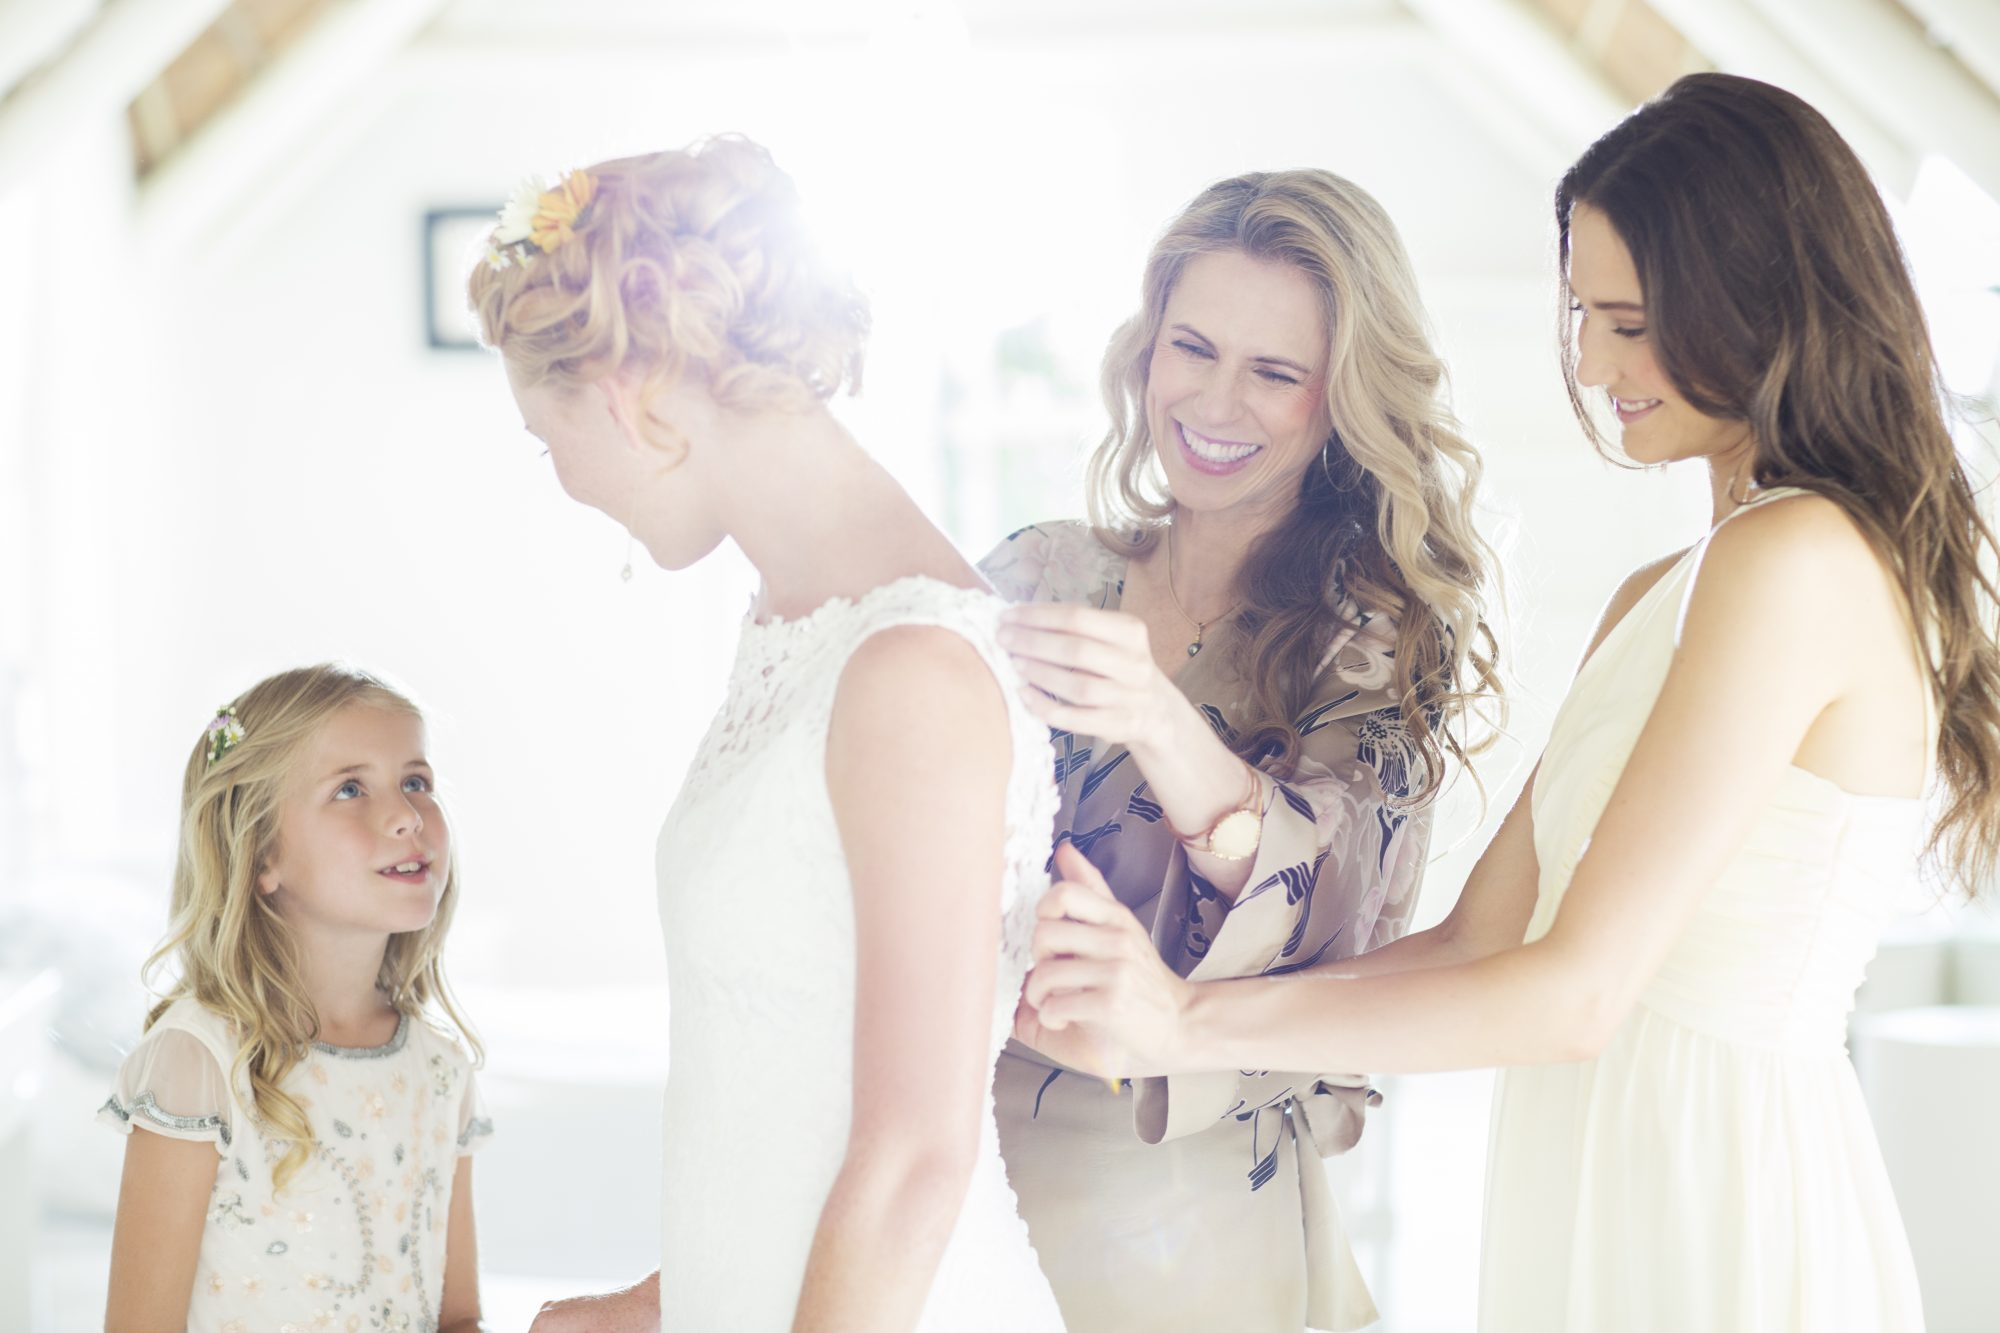 Bridesmaids helping bride with her dress on wedding day